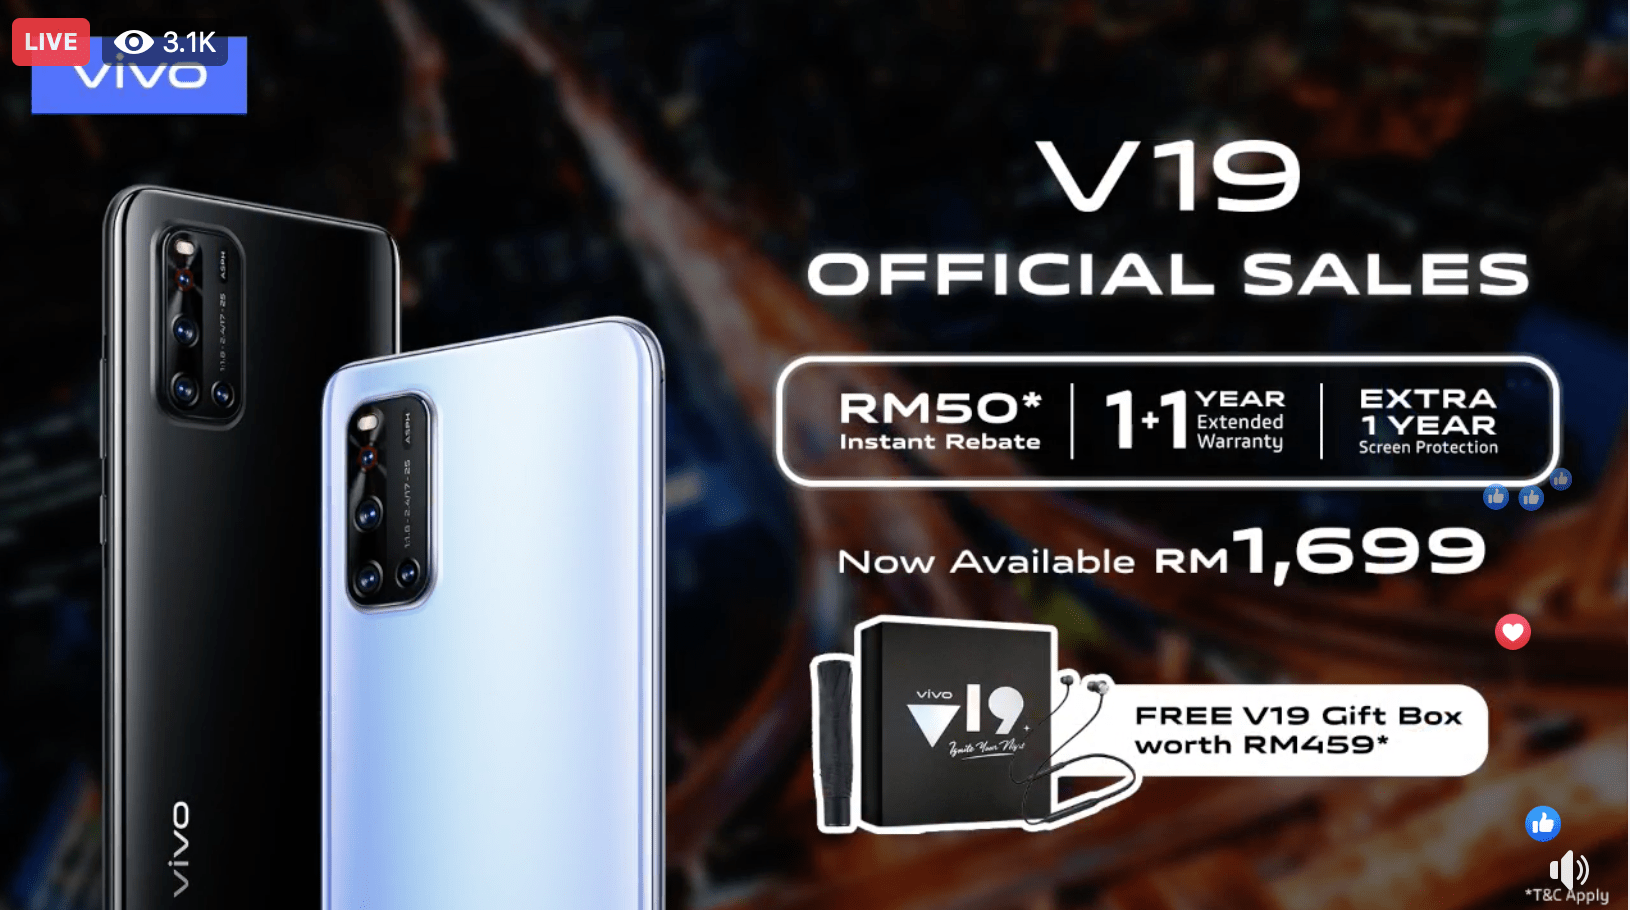 Vivo V19 lands in Malaysia with a 32MP dual front camera at RM1,699 40